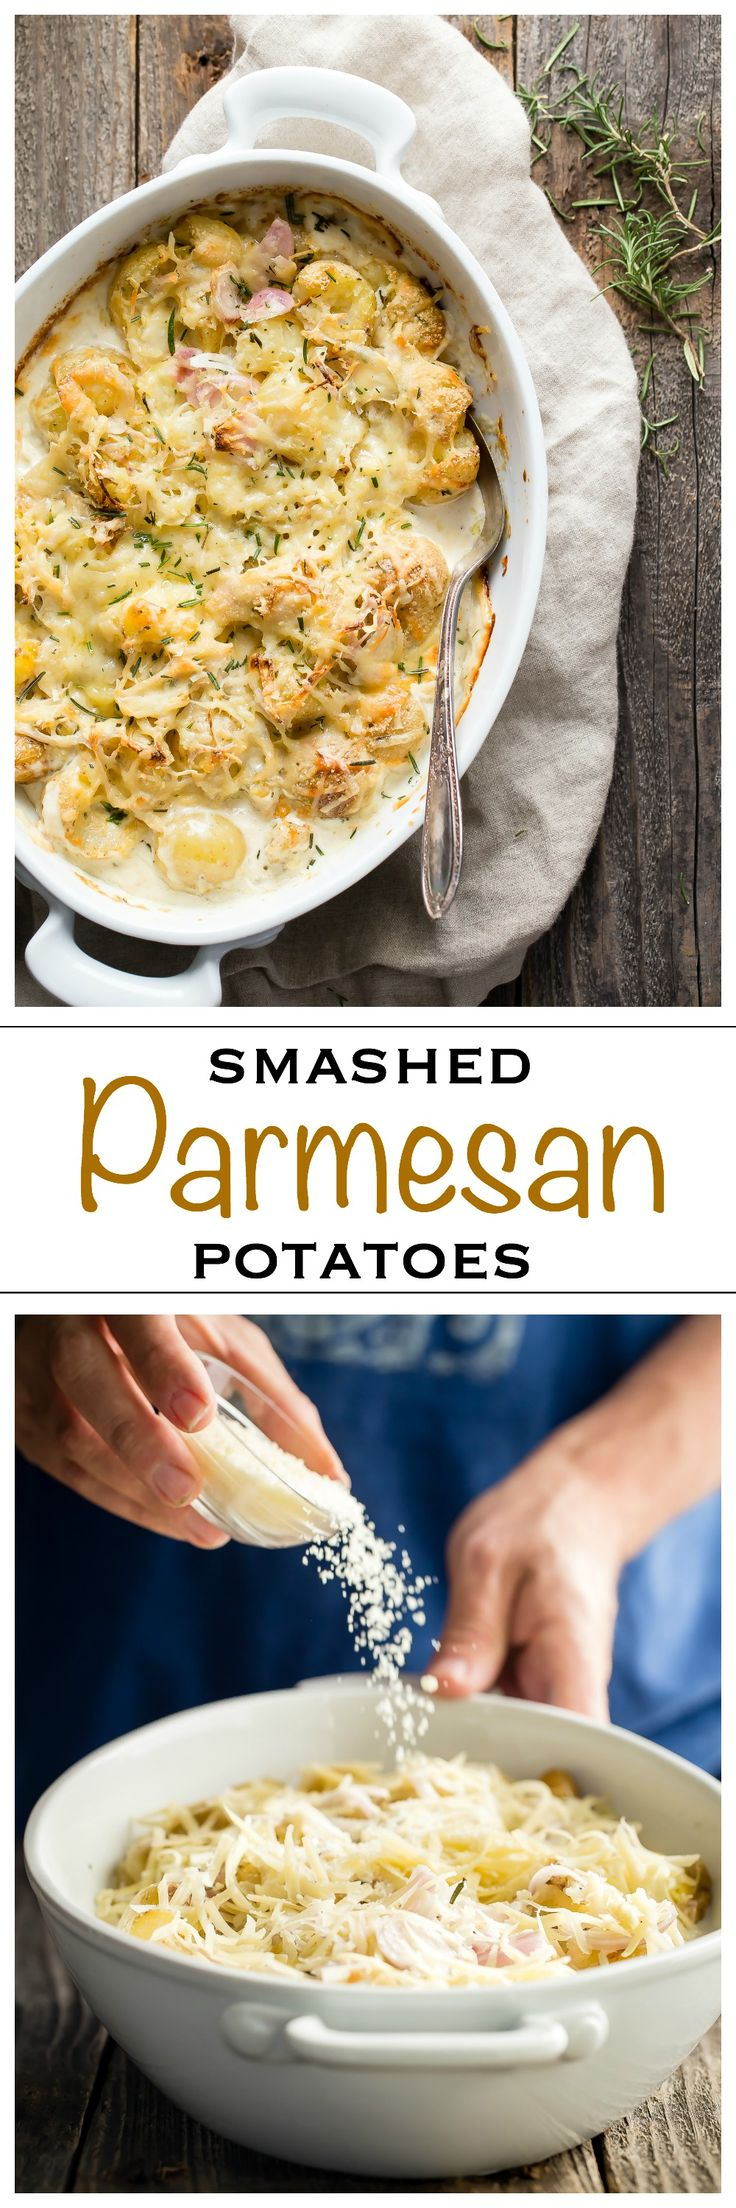 Creamy baby potatoes roasted and cooked in a garlic, shallot and rosemary sauce. Topped with a layer of Gruyere and Parmesan cheese for the perfect Thanksgiving side - Foodness Gracious